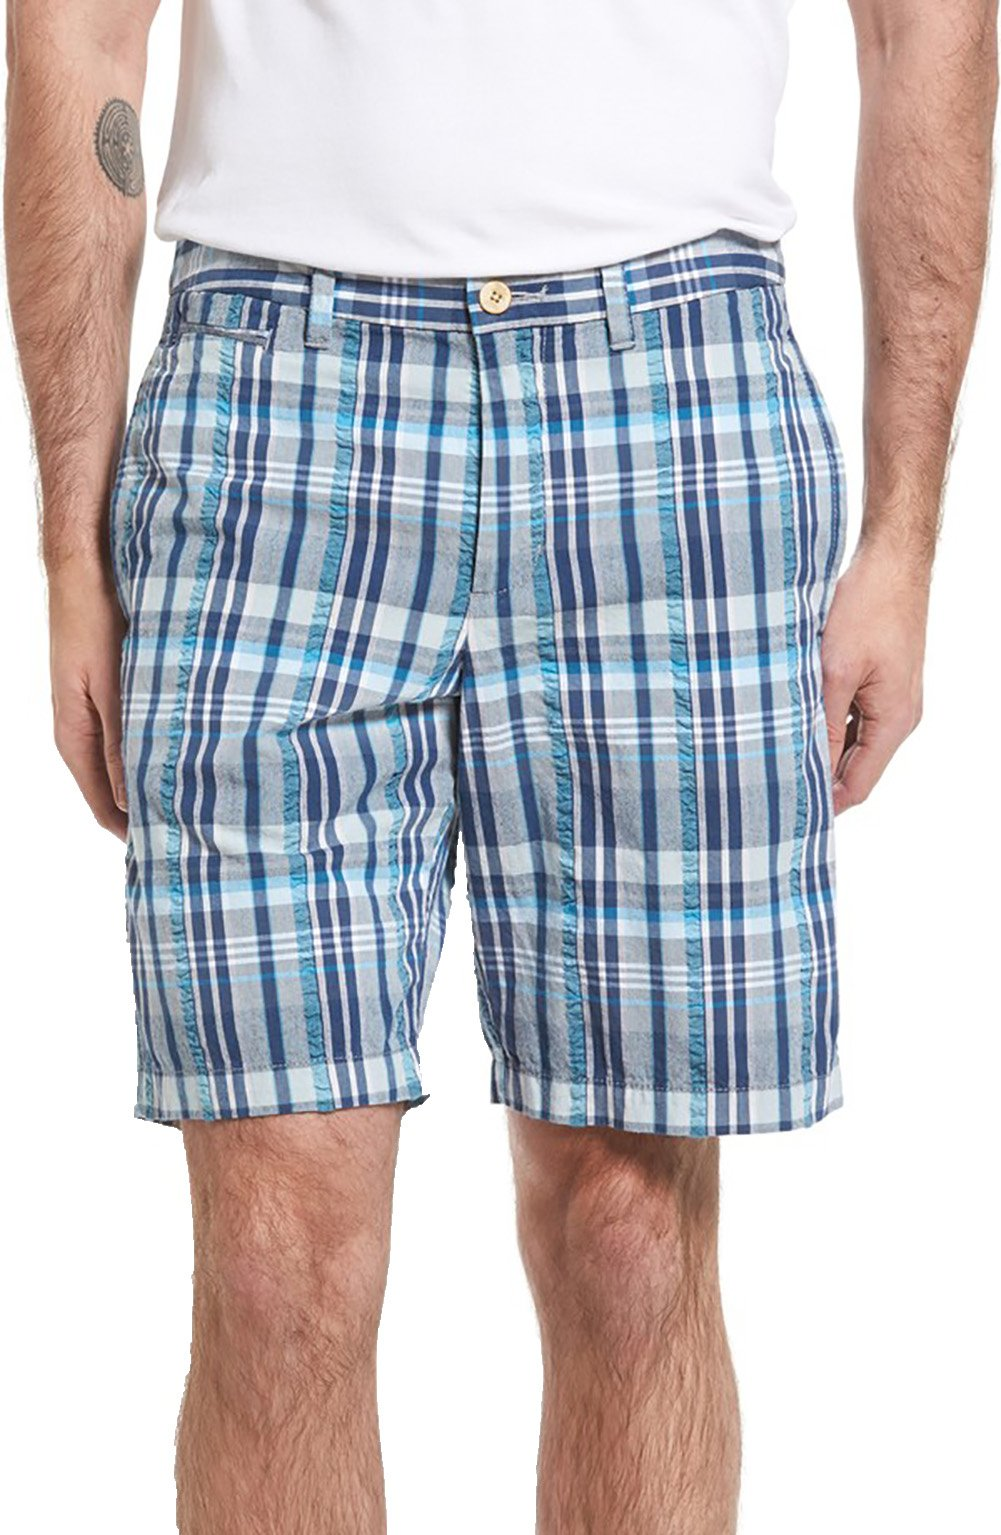 Tommy Bahama Men's Big & Tall Madras Seersucker Shorts (44 x R, Chambray) by Tommy Bahama (Image #1)